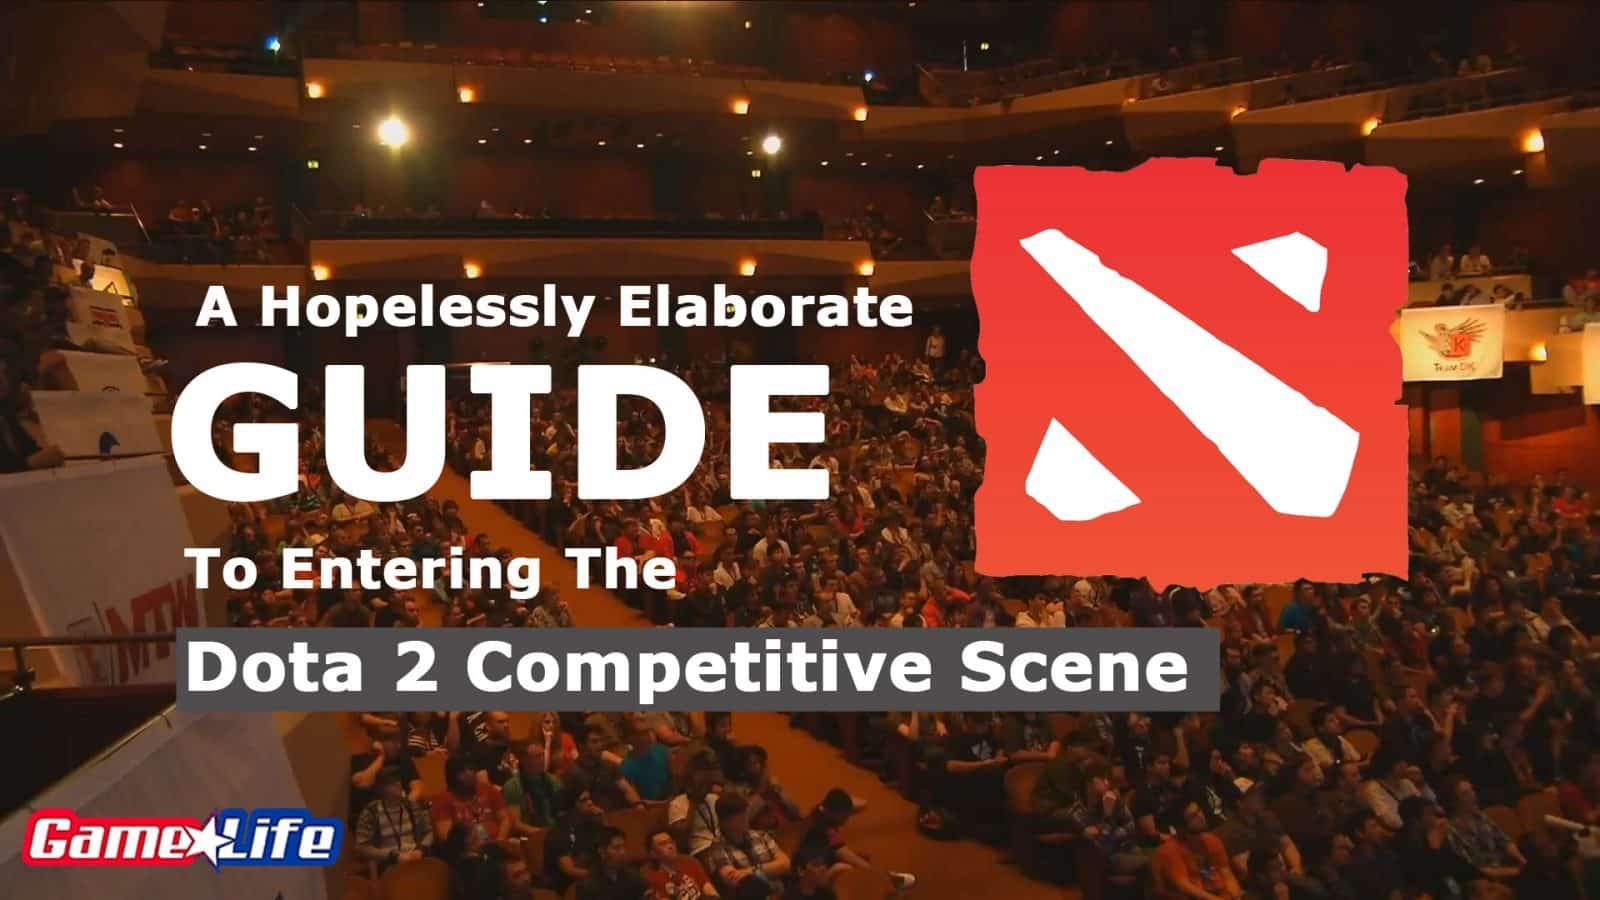 Hopelessly Elaborate Guide To Entering The Dota 2 Competitive Esports Scene For Noobs